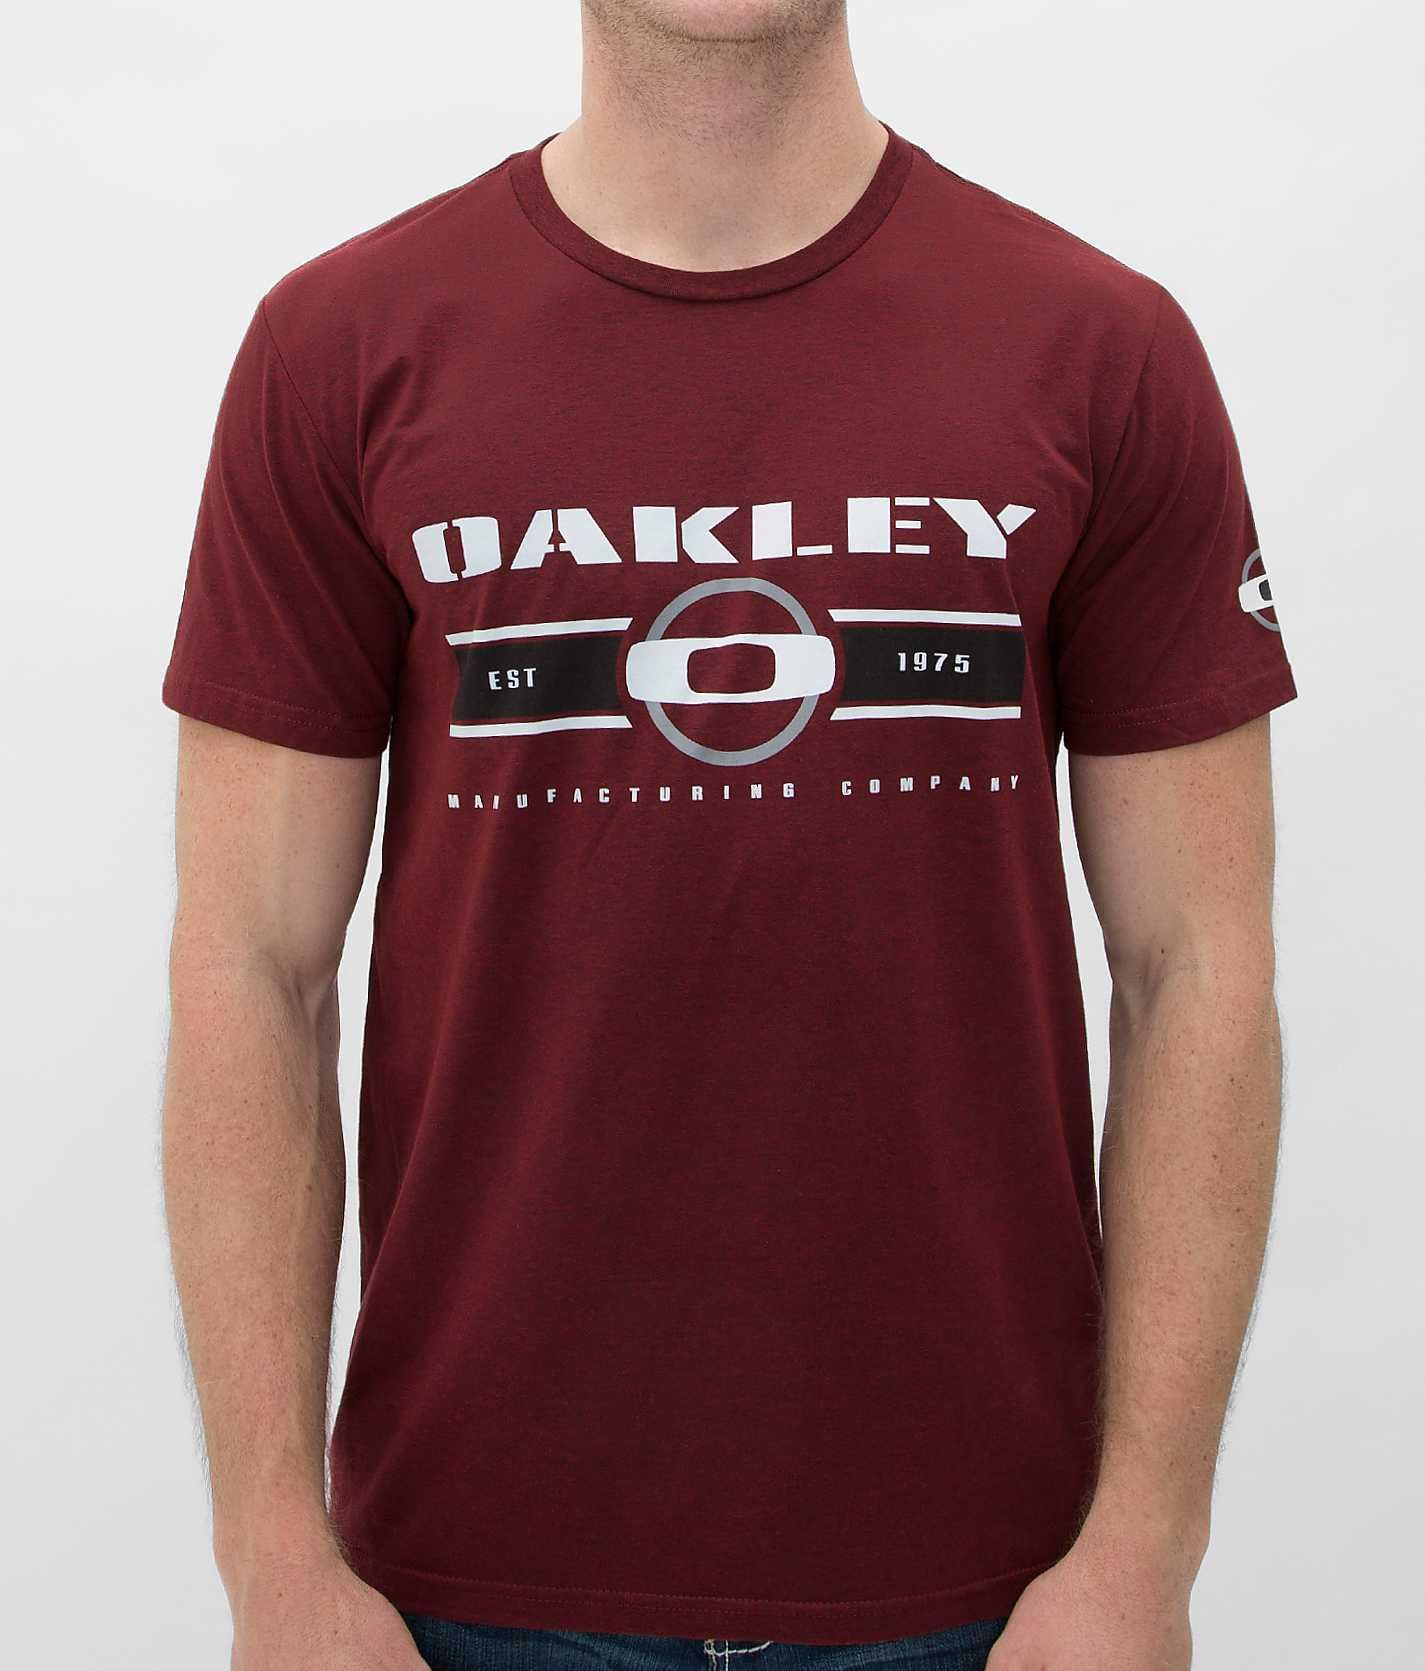 6ad3621cb6155 Oakley Manufacturing T-Shirt - Men s Shirts Tops   Buckle   Fashion ...